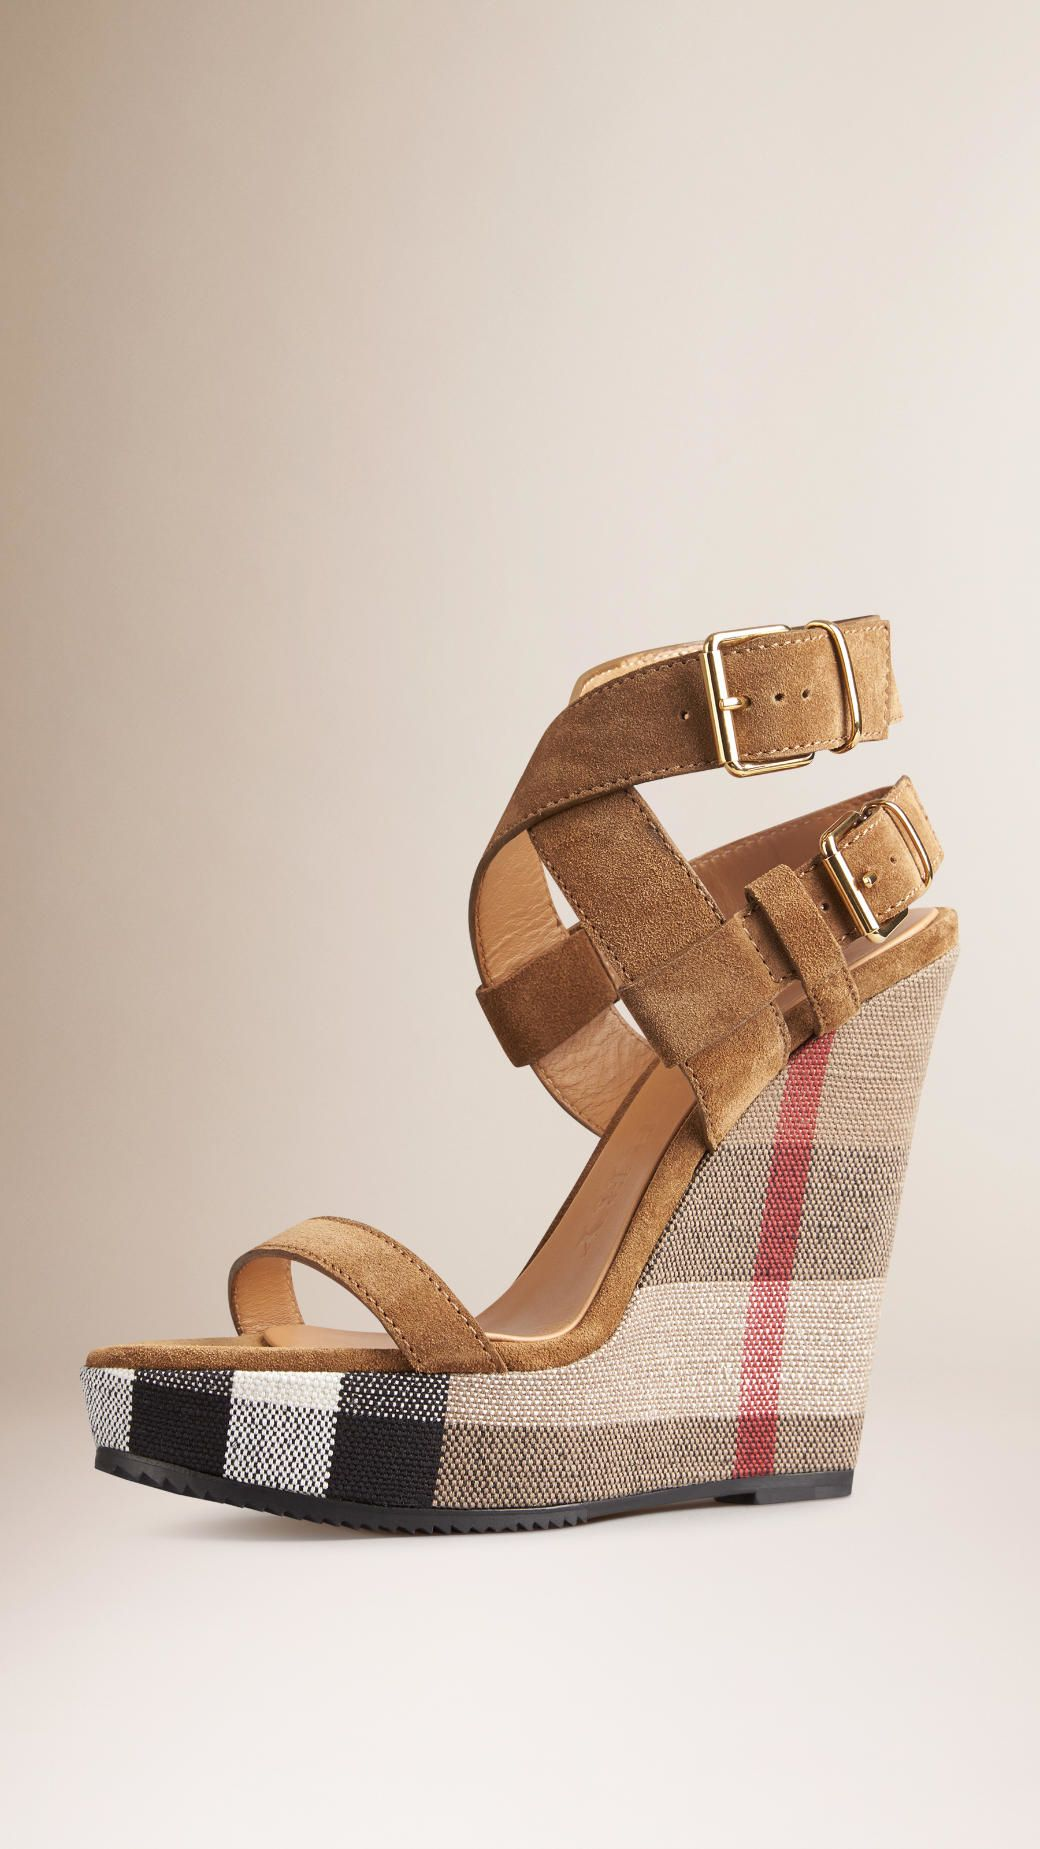 3b16a6f6c7 BURBERRY WEDGES | aaa....shoezzz | Shoes, Wedge shoes, Womens shoes ...